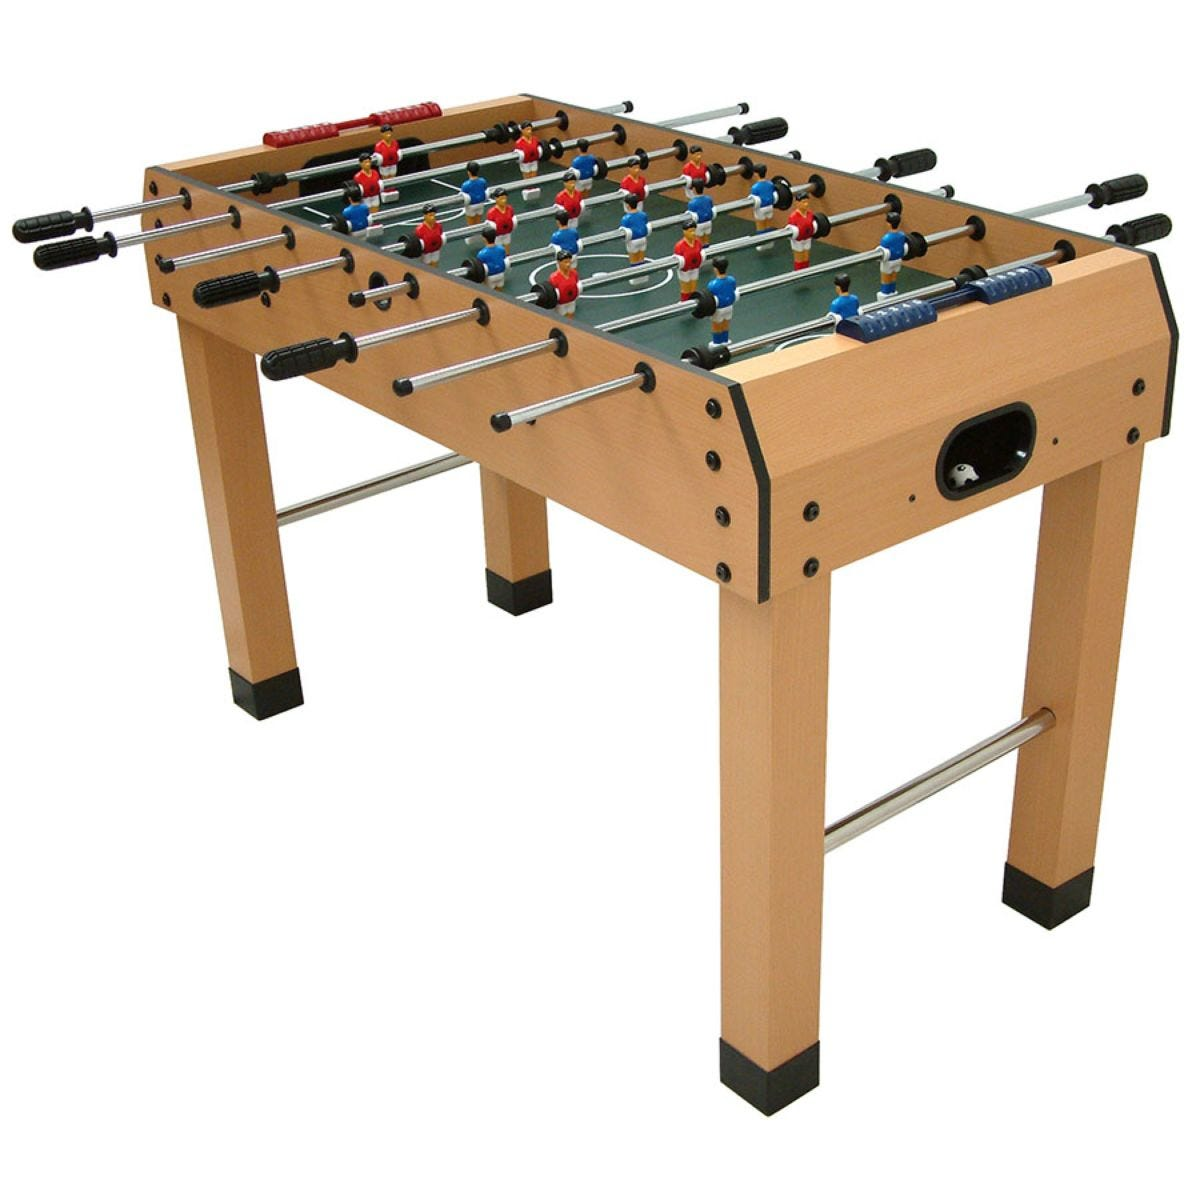 Mightymast Gemini Table Football